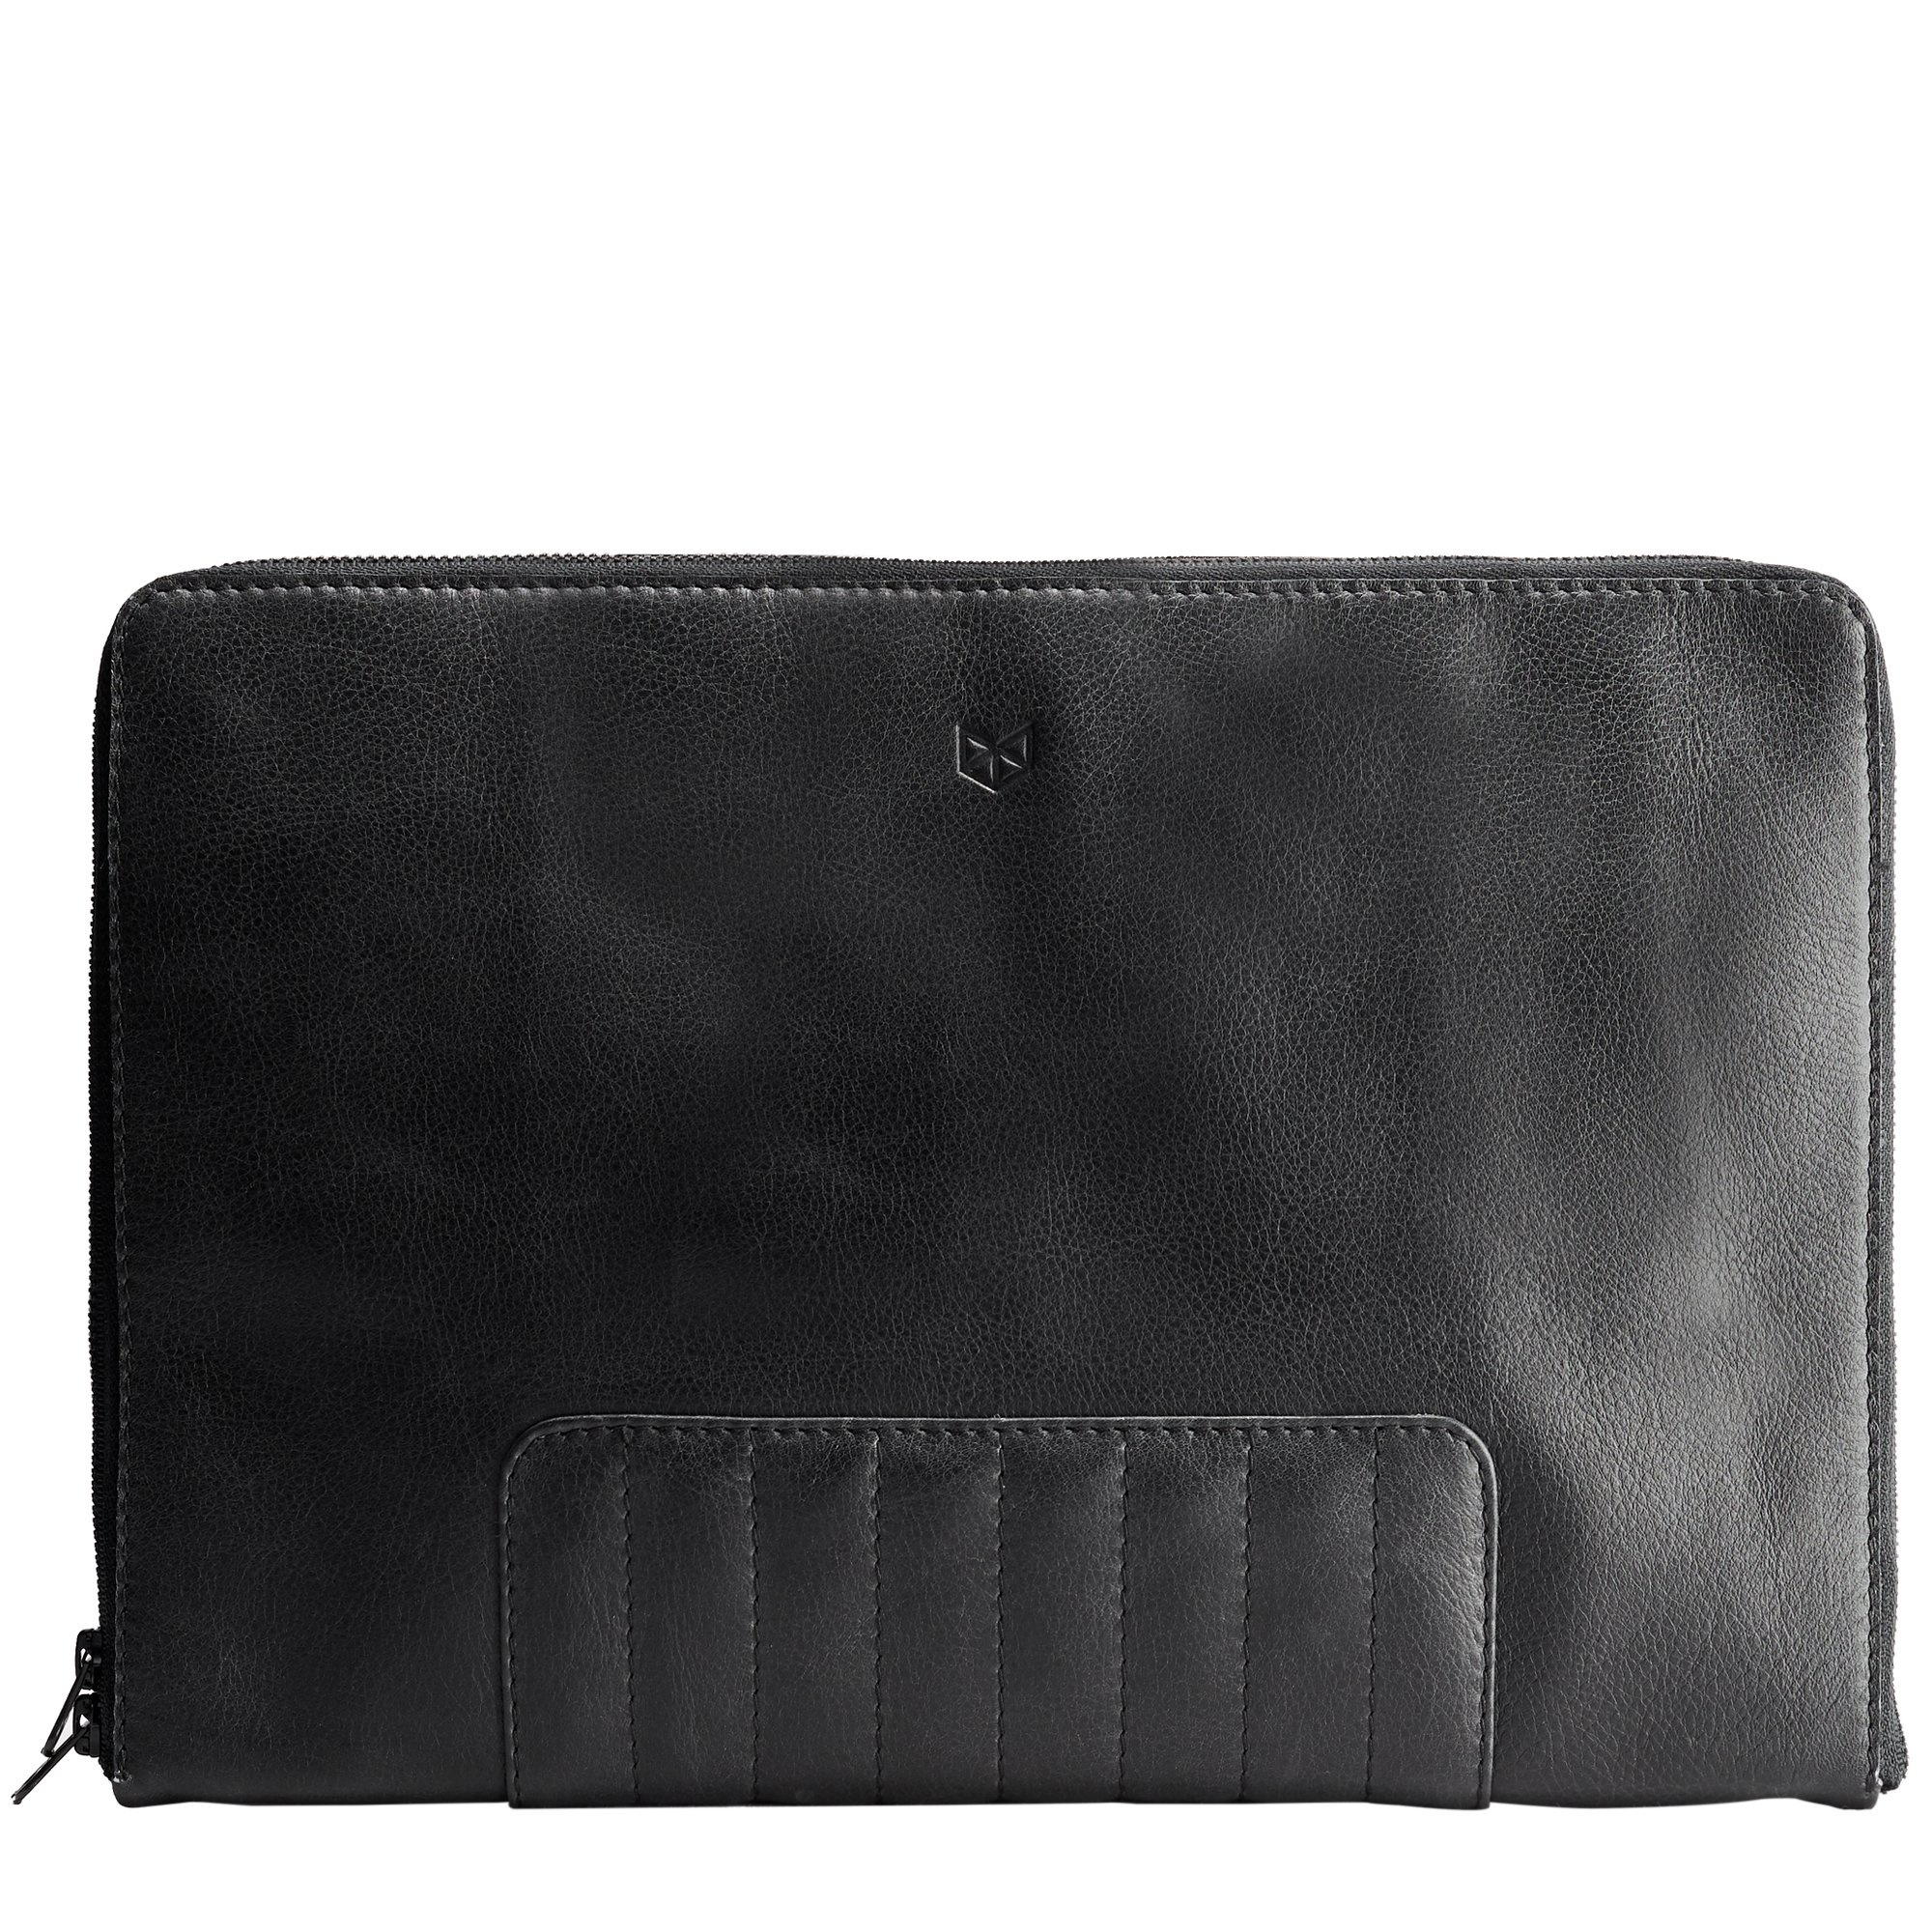 Biker Laptop Portfolio - Black